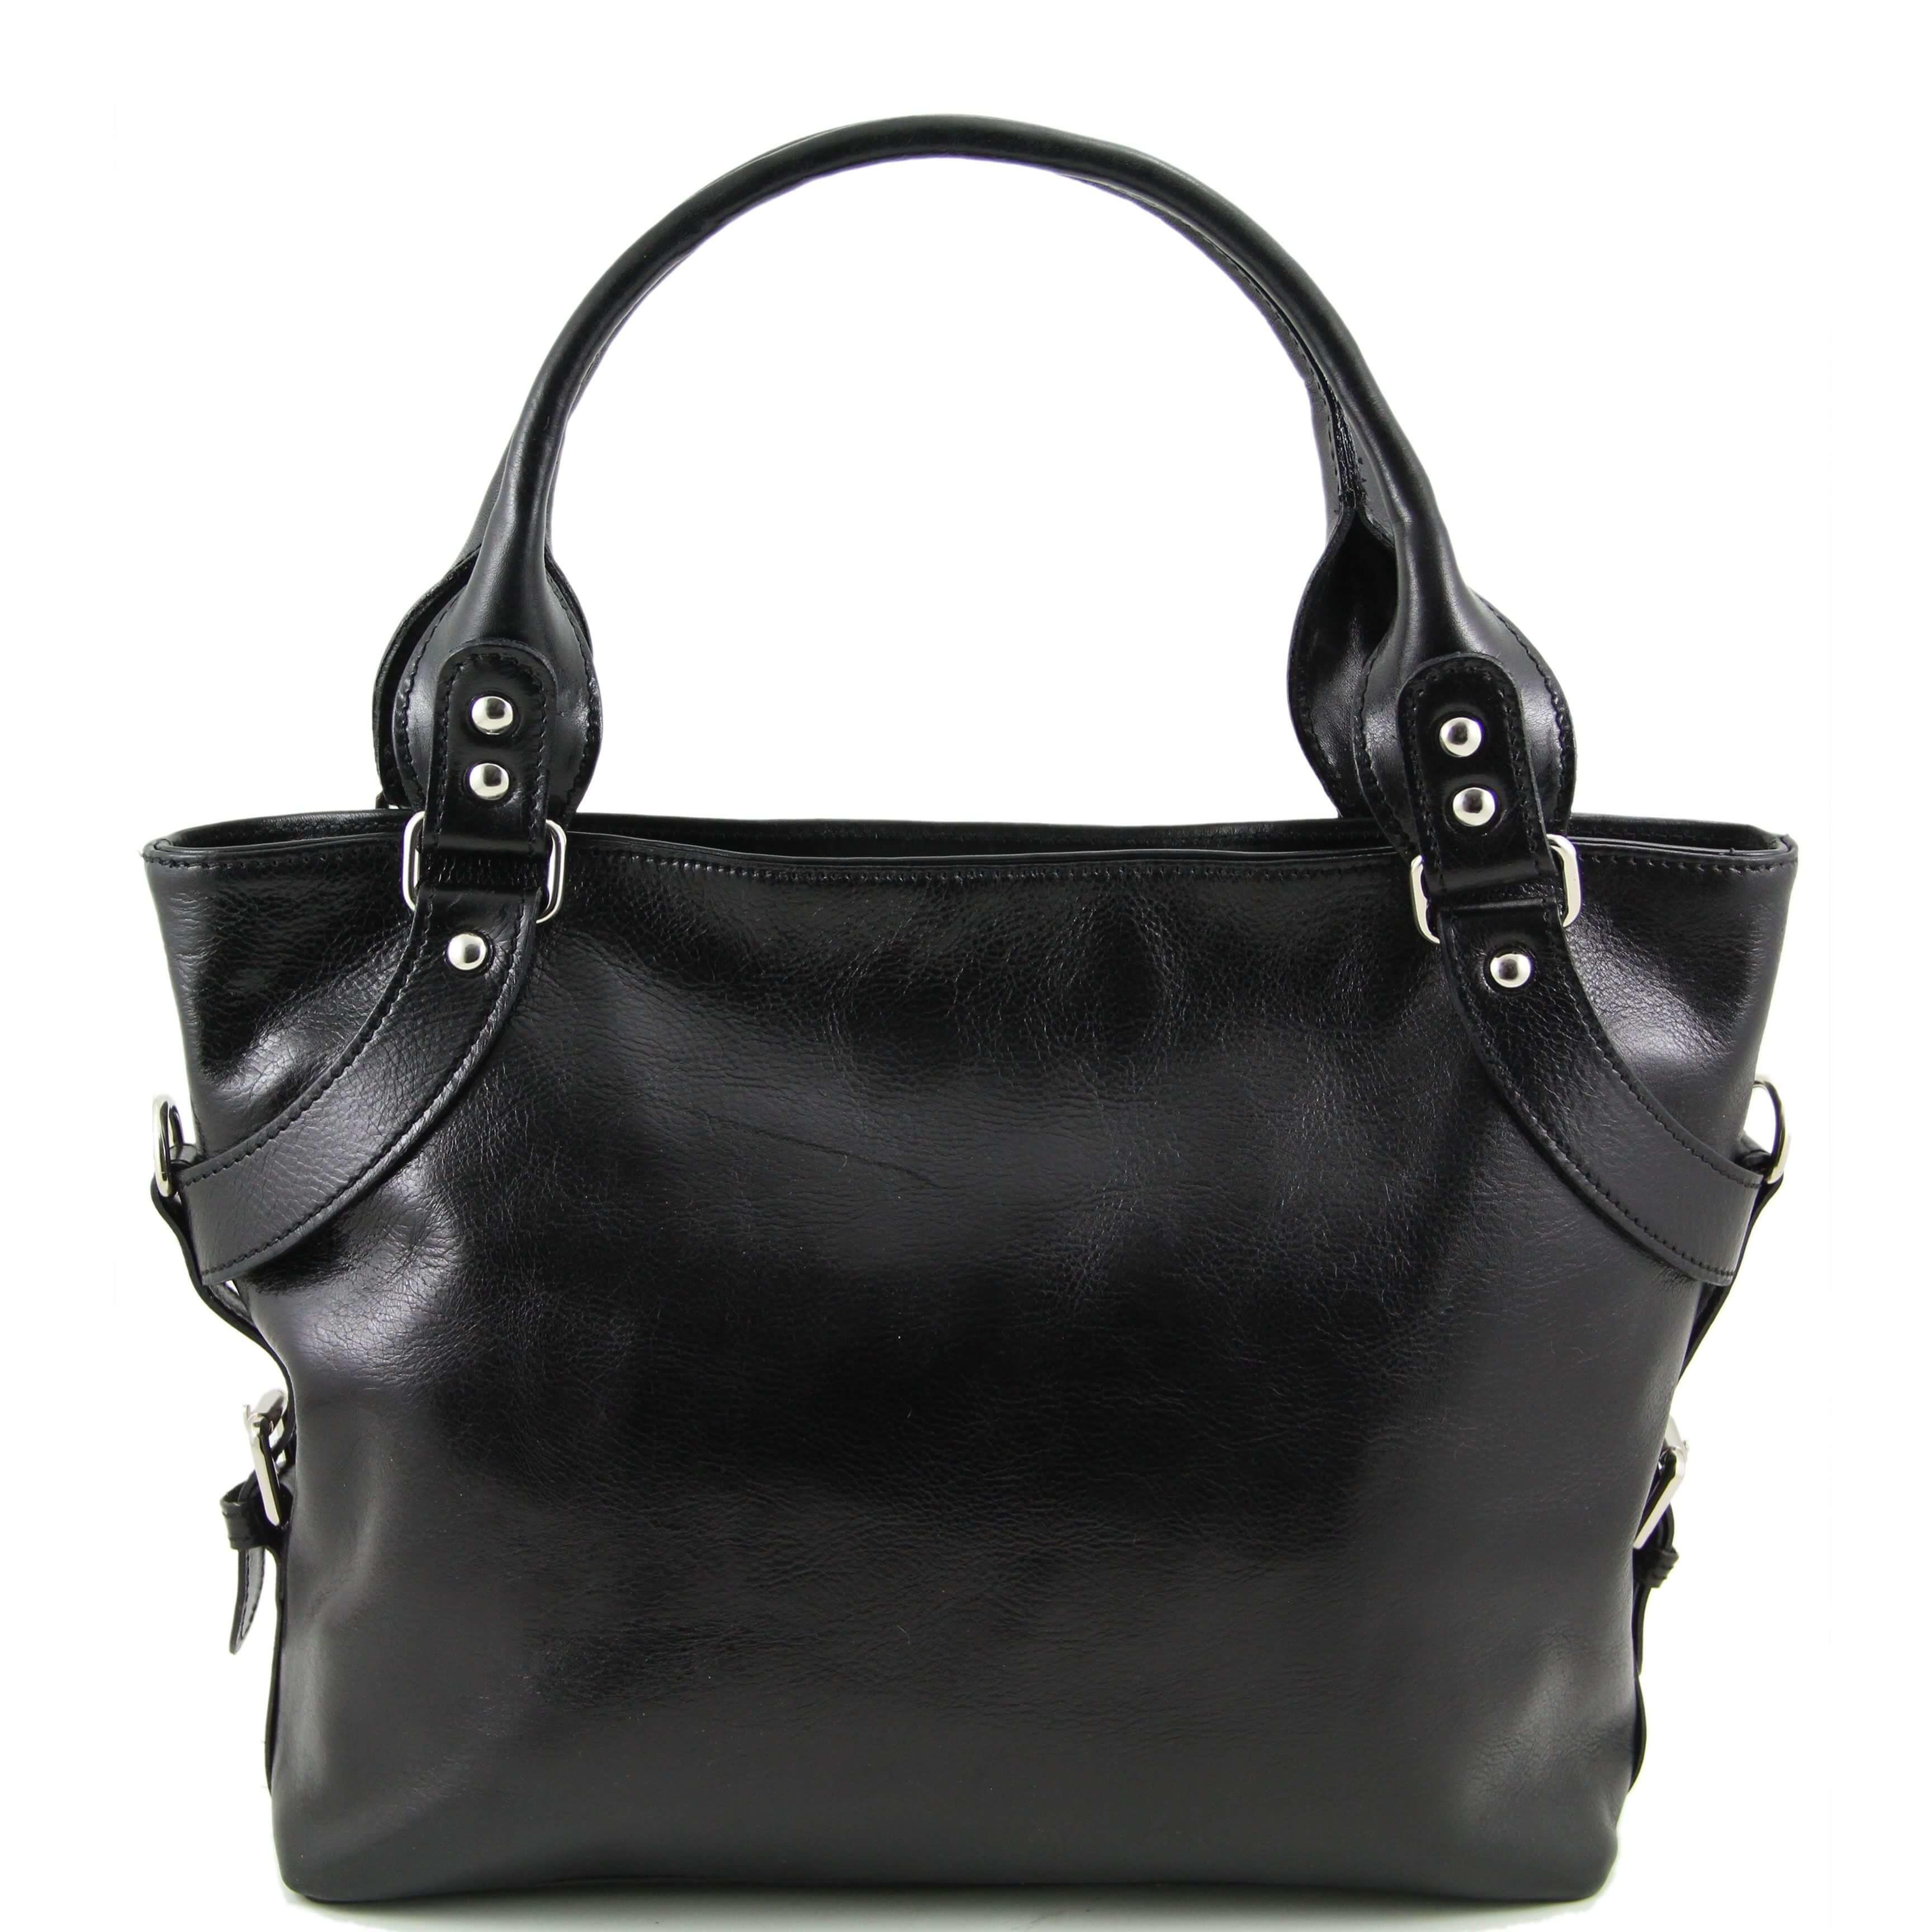 TL140899 Ladies - Womans Ilenia Leather Hand-Shoulder-Tote-Bag & Shoulder Strap - Black